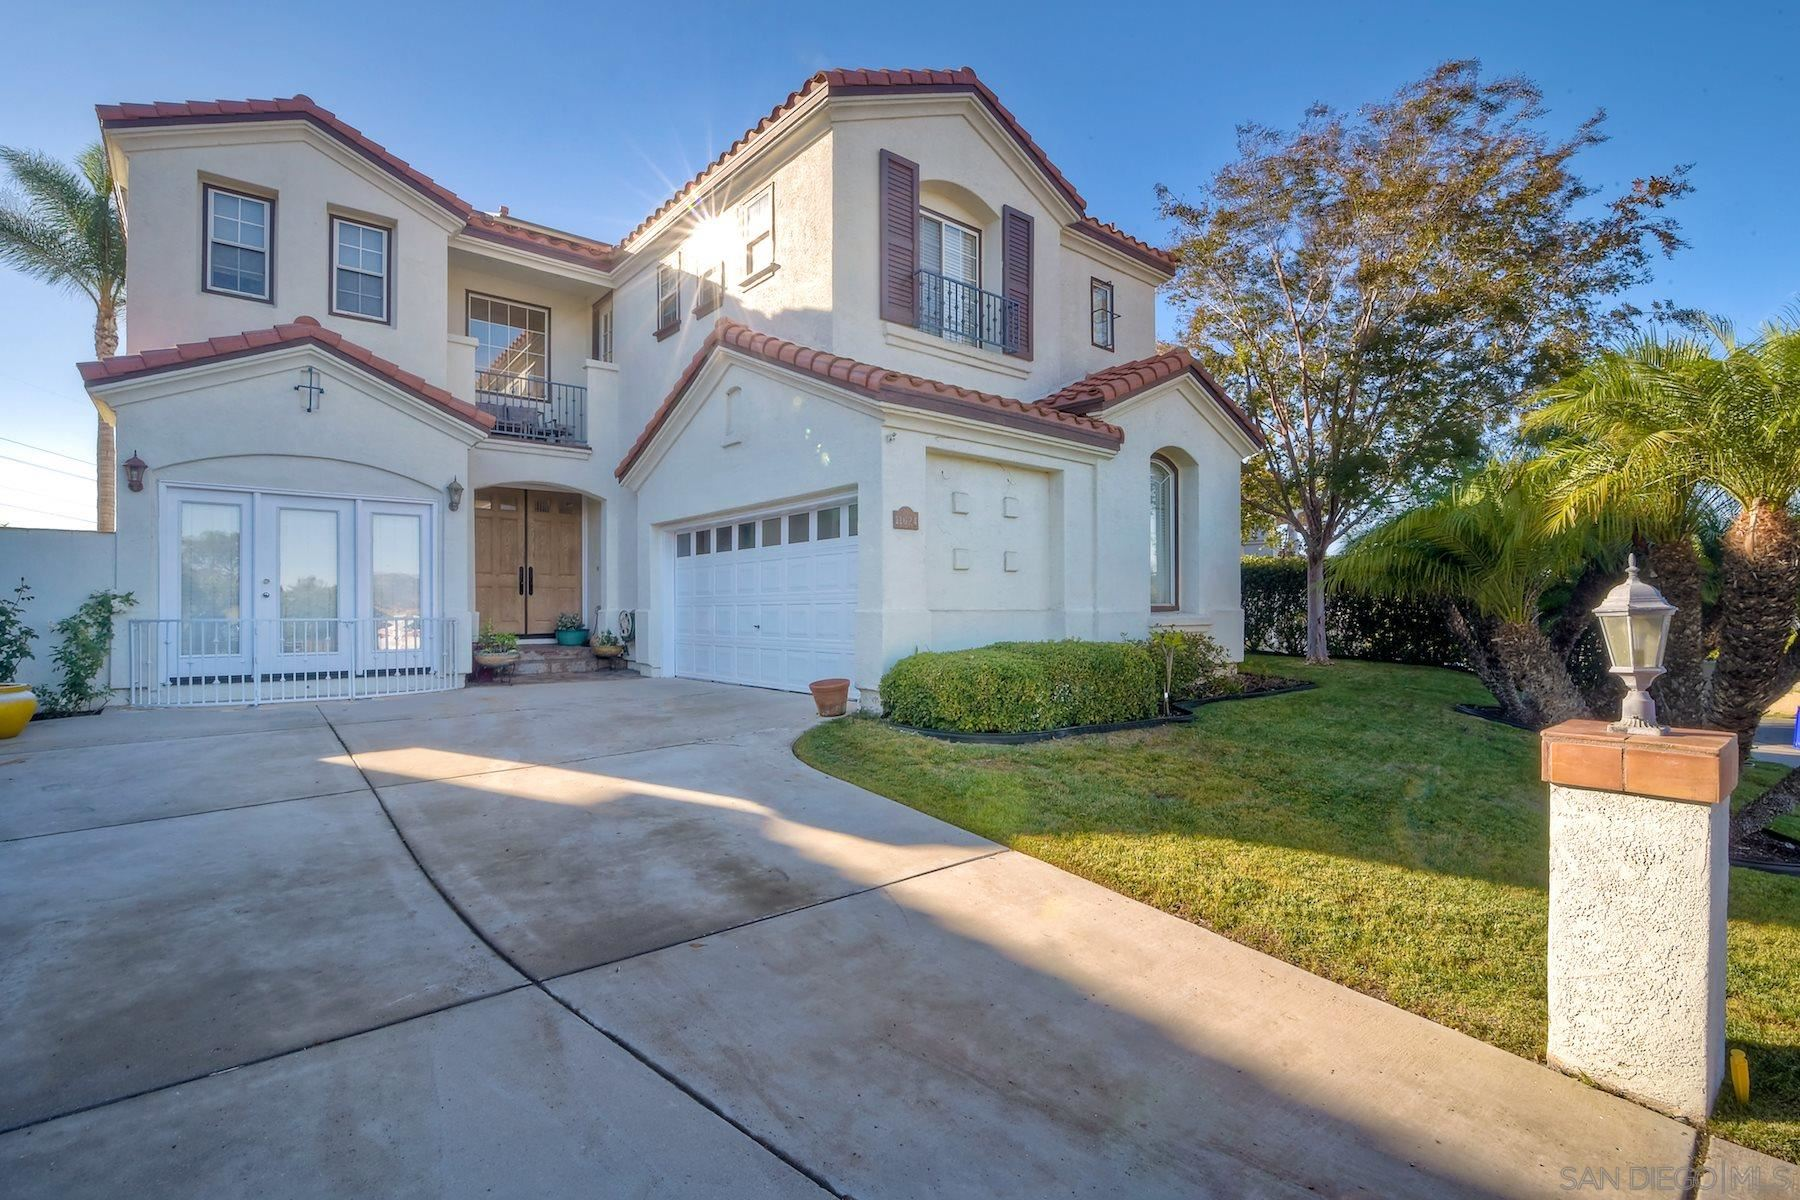 Photo of 11624 Candy Rose Way, San Diego, CA 92131 (MLS # 200052485)